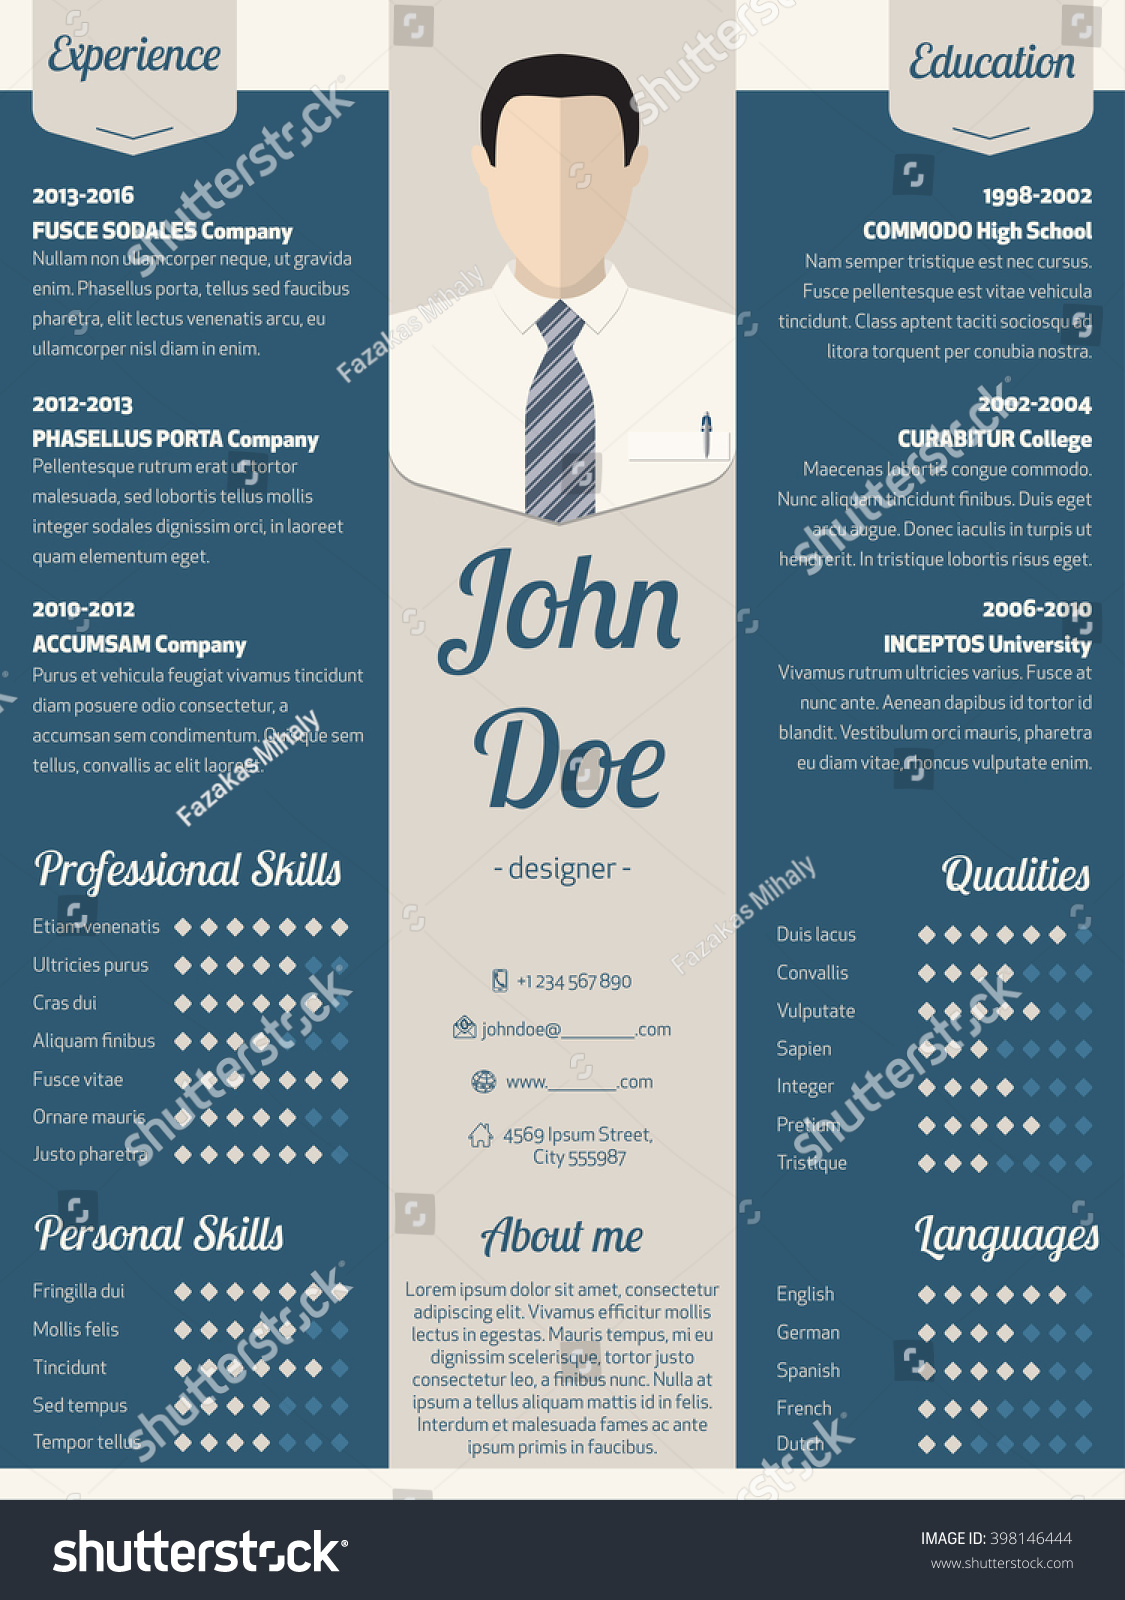 new modern resume cv curriculum vitae stock vector 398146444